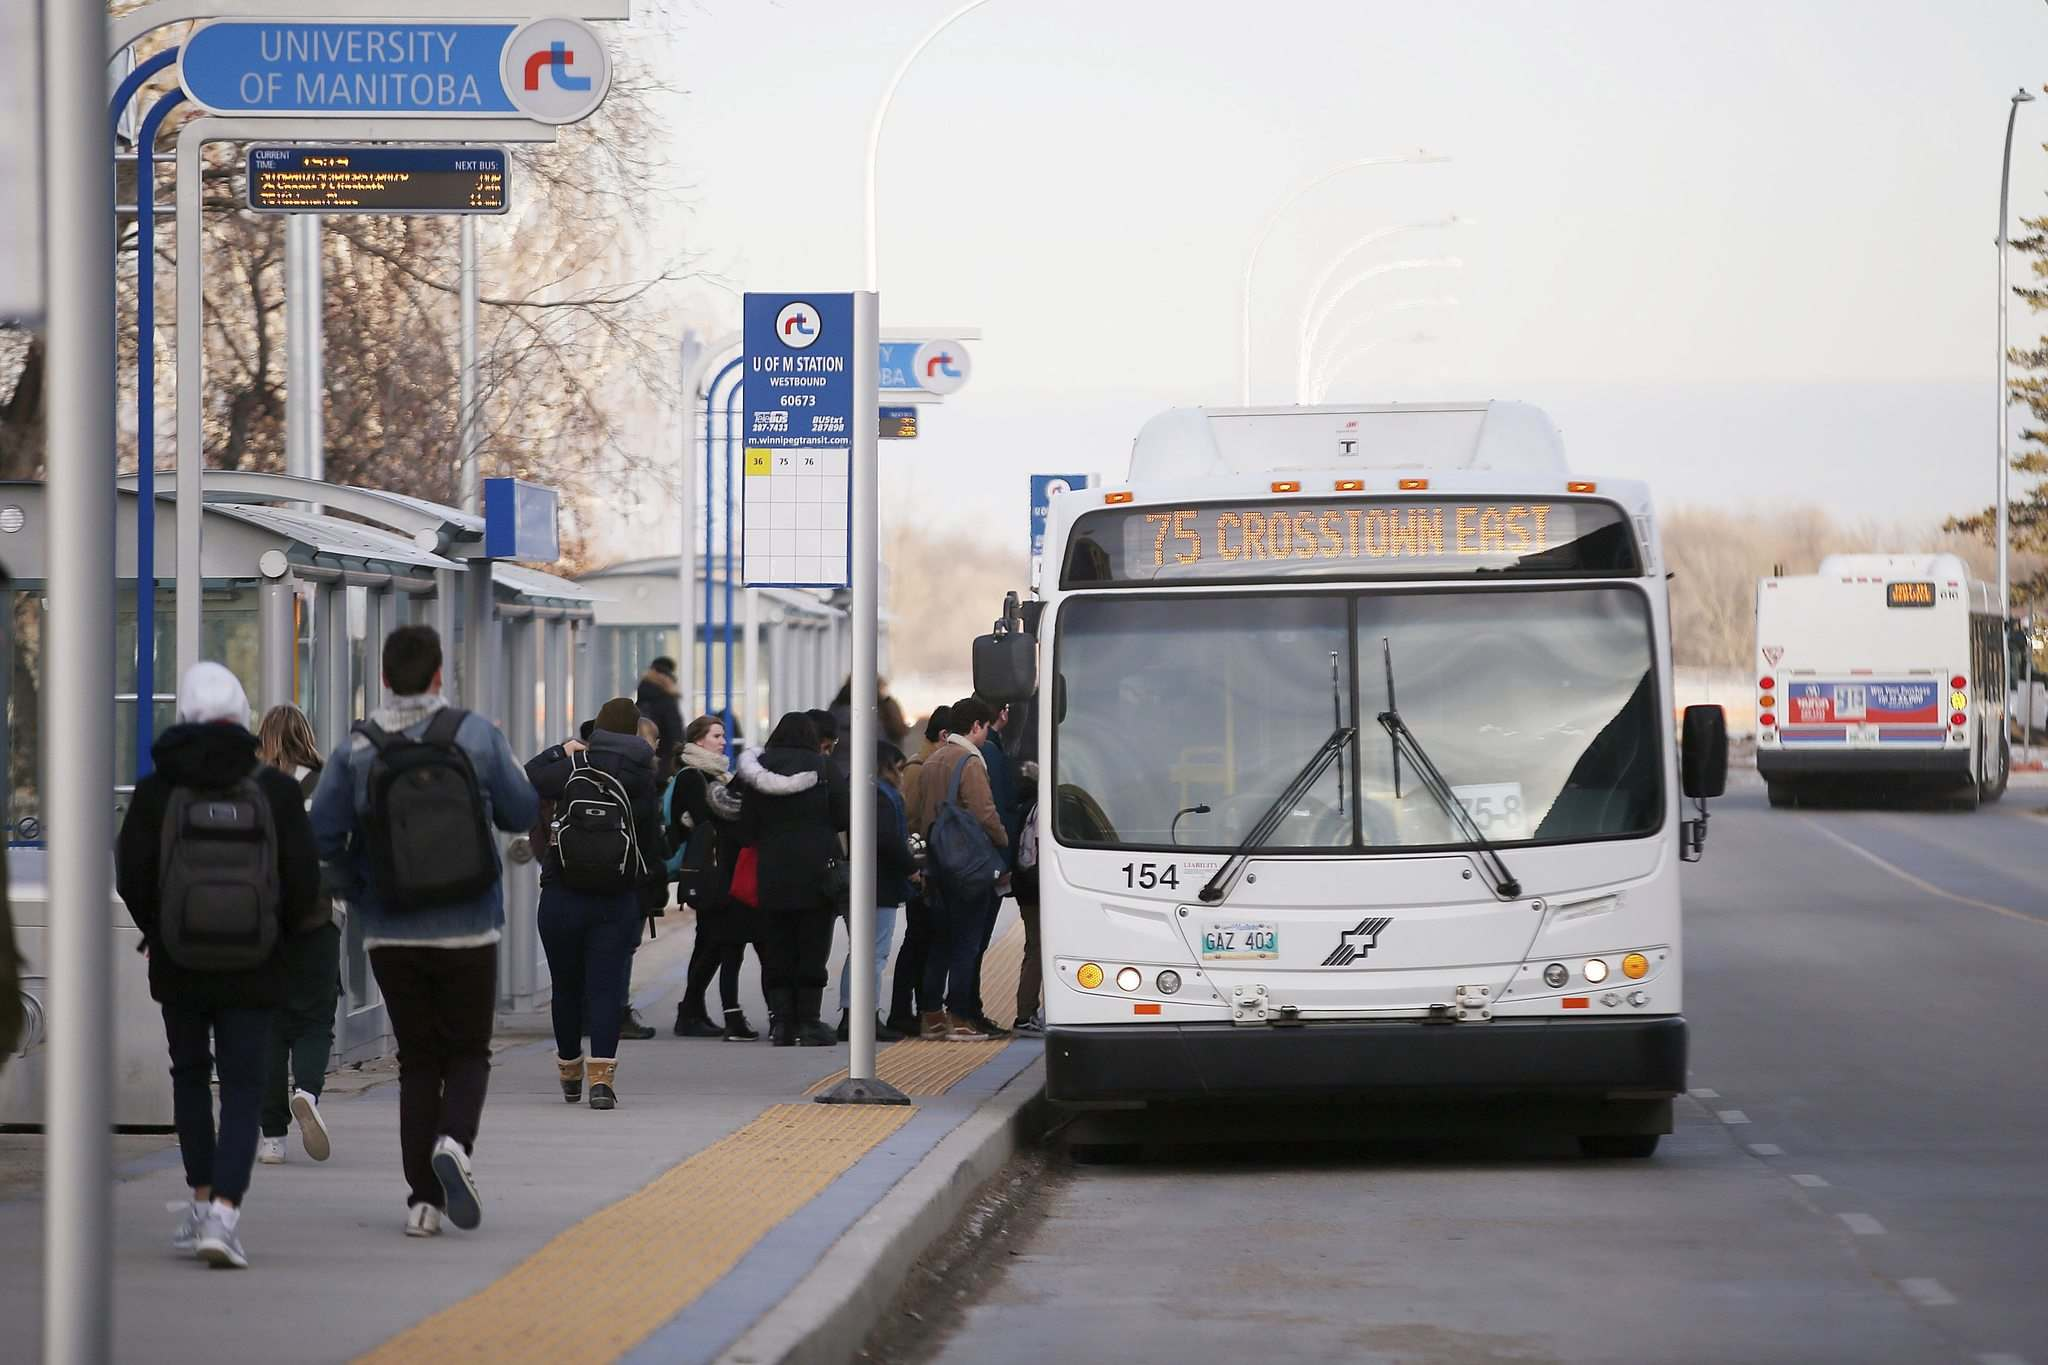 JOHN WOODS / WINNIPEG FREE PRESS FILES</p><p>Winnipeg Transit is facing a $12.8-million cut to its capital budget in 2020, meaning it will cut staff positions and reduce operating hours.</p>